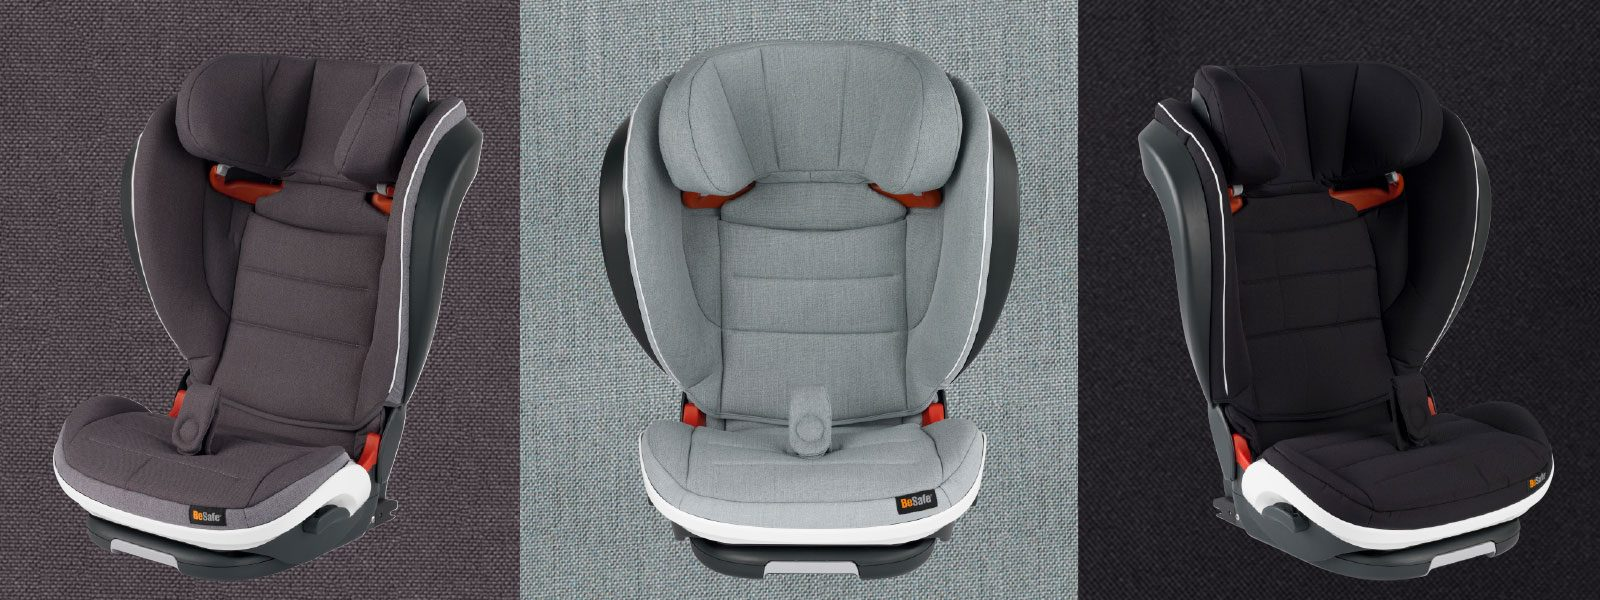 besafe flex fix new booster seat